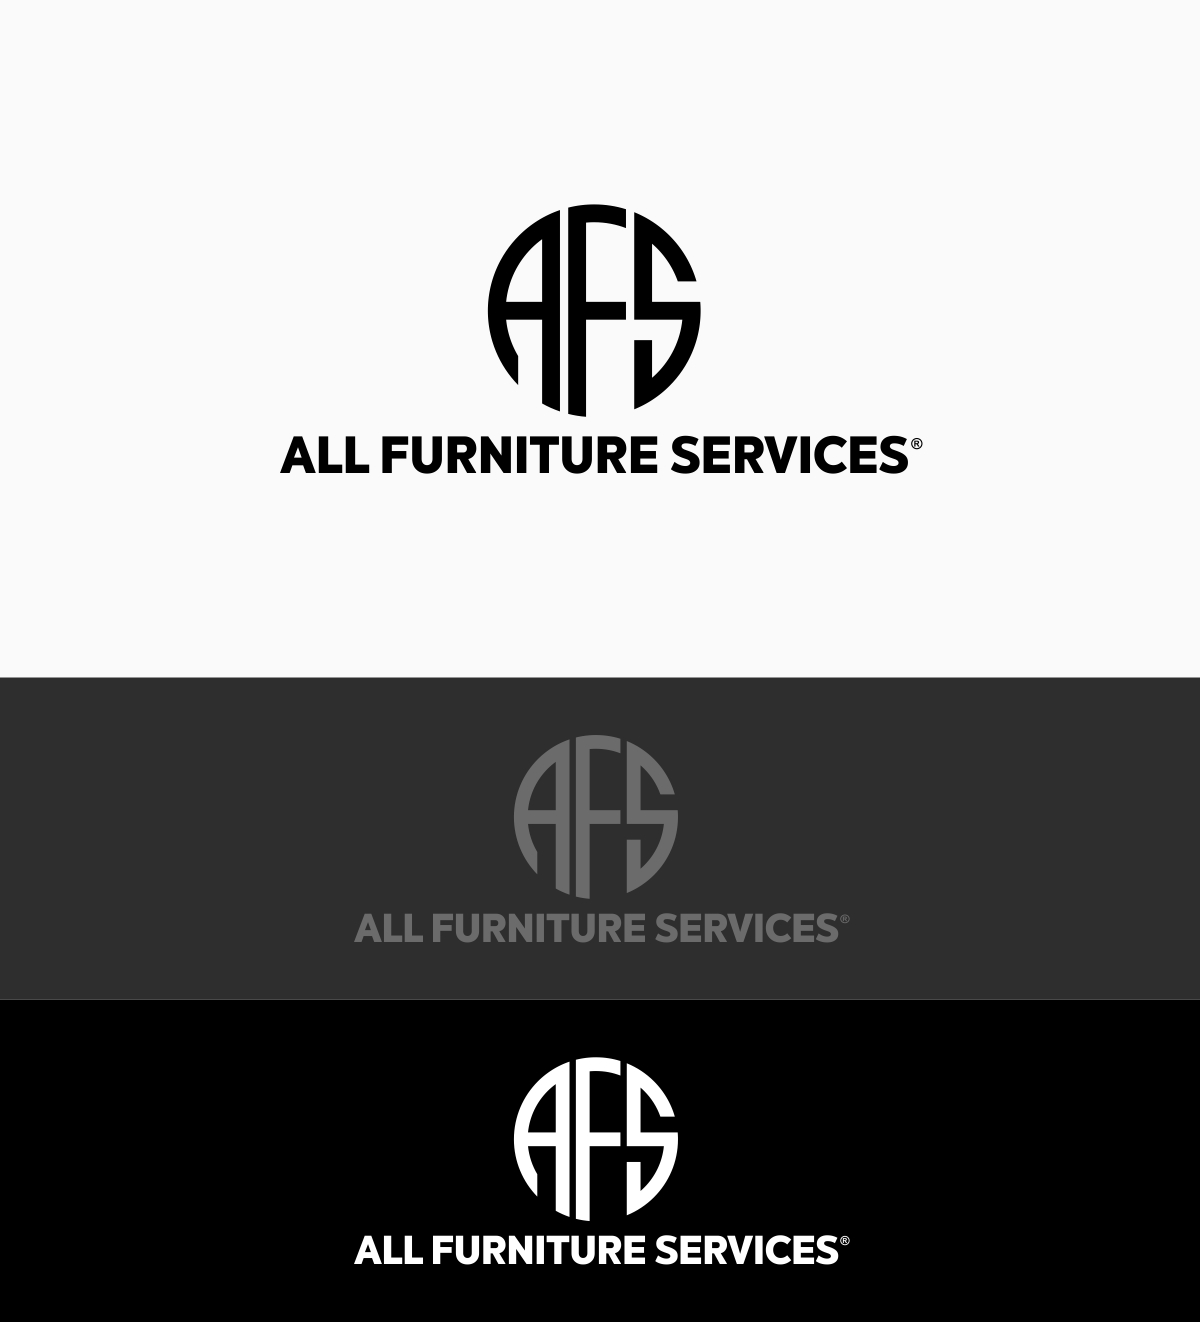 Logo Design By B8 For AFS All Furniture Services   Logo   Design #14258599